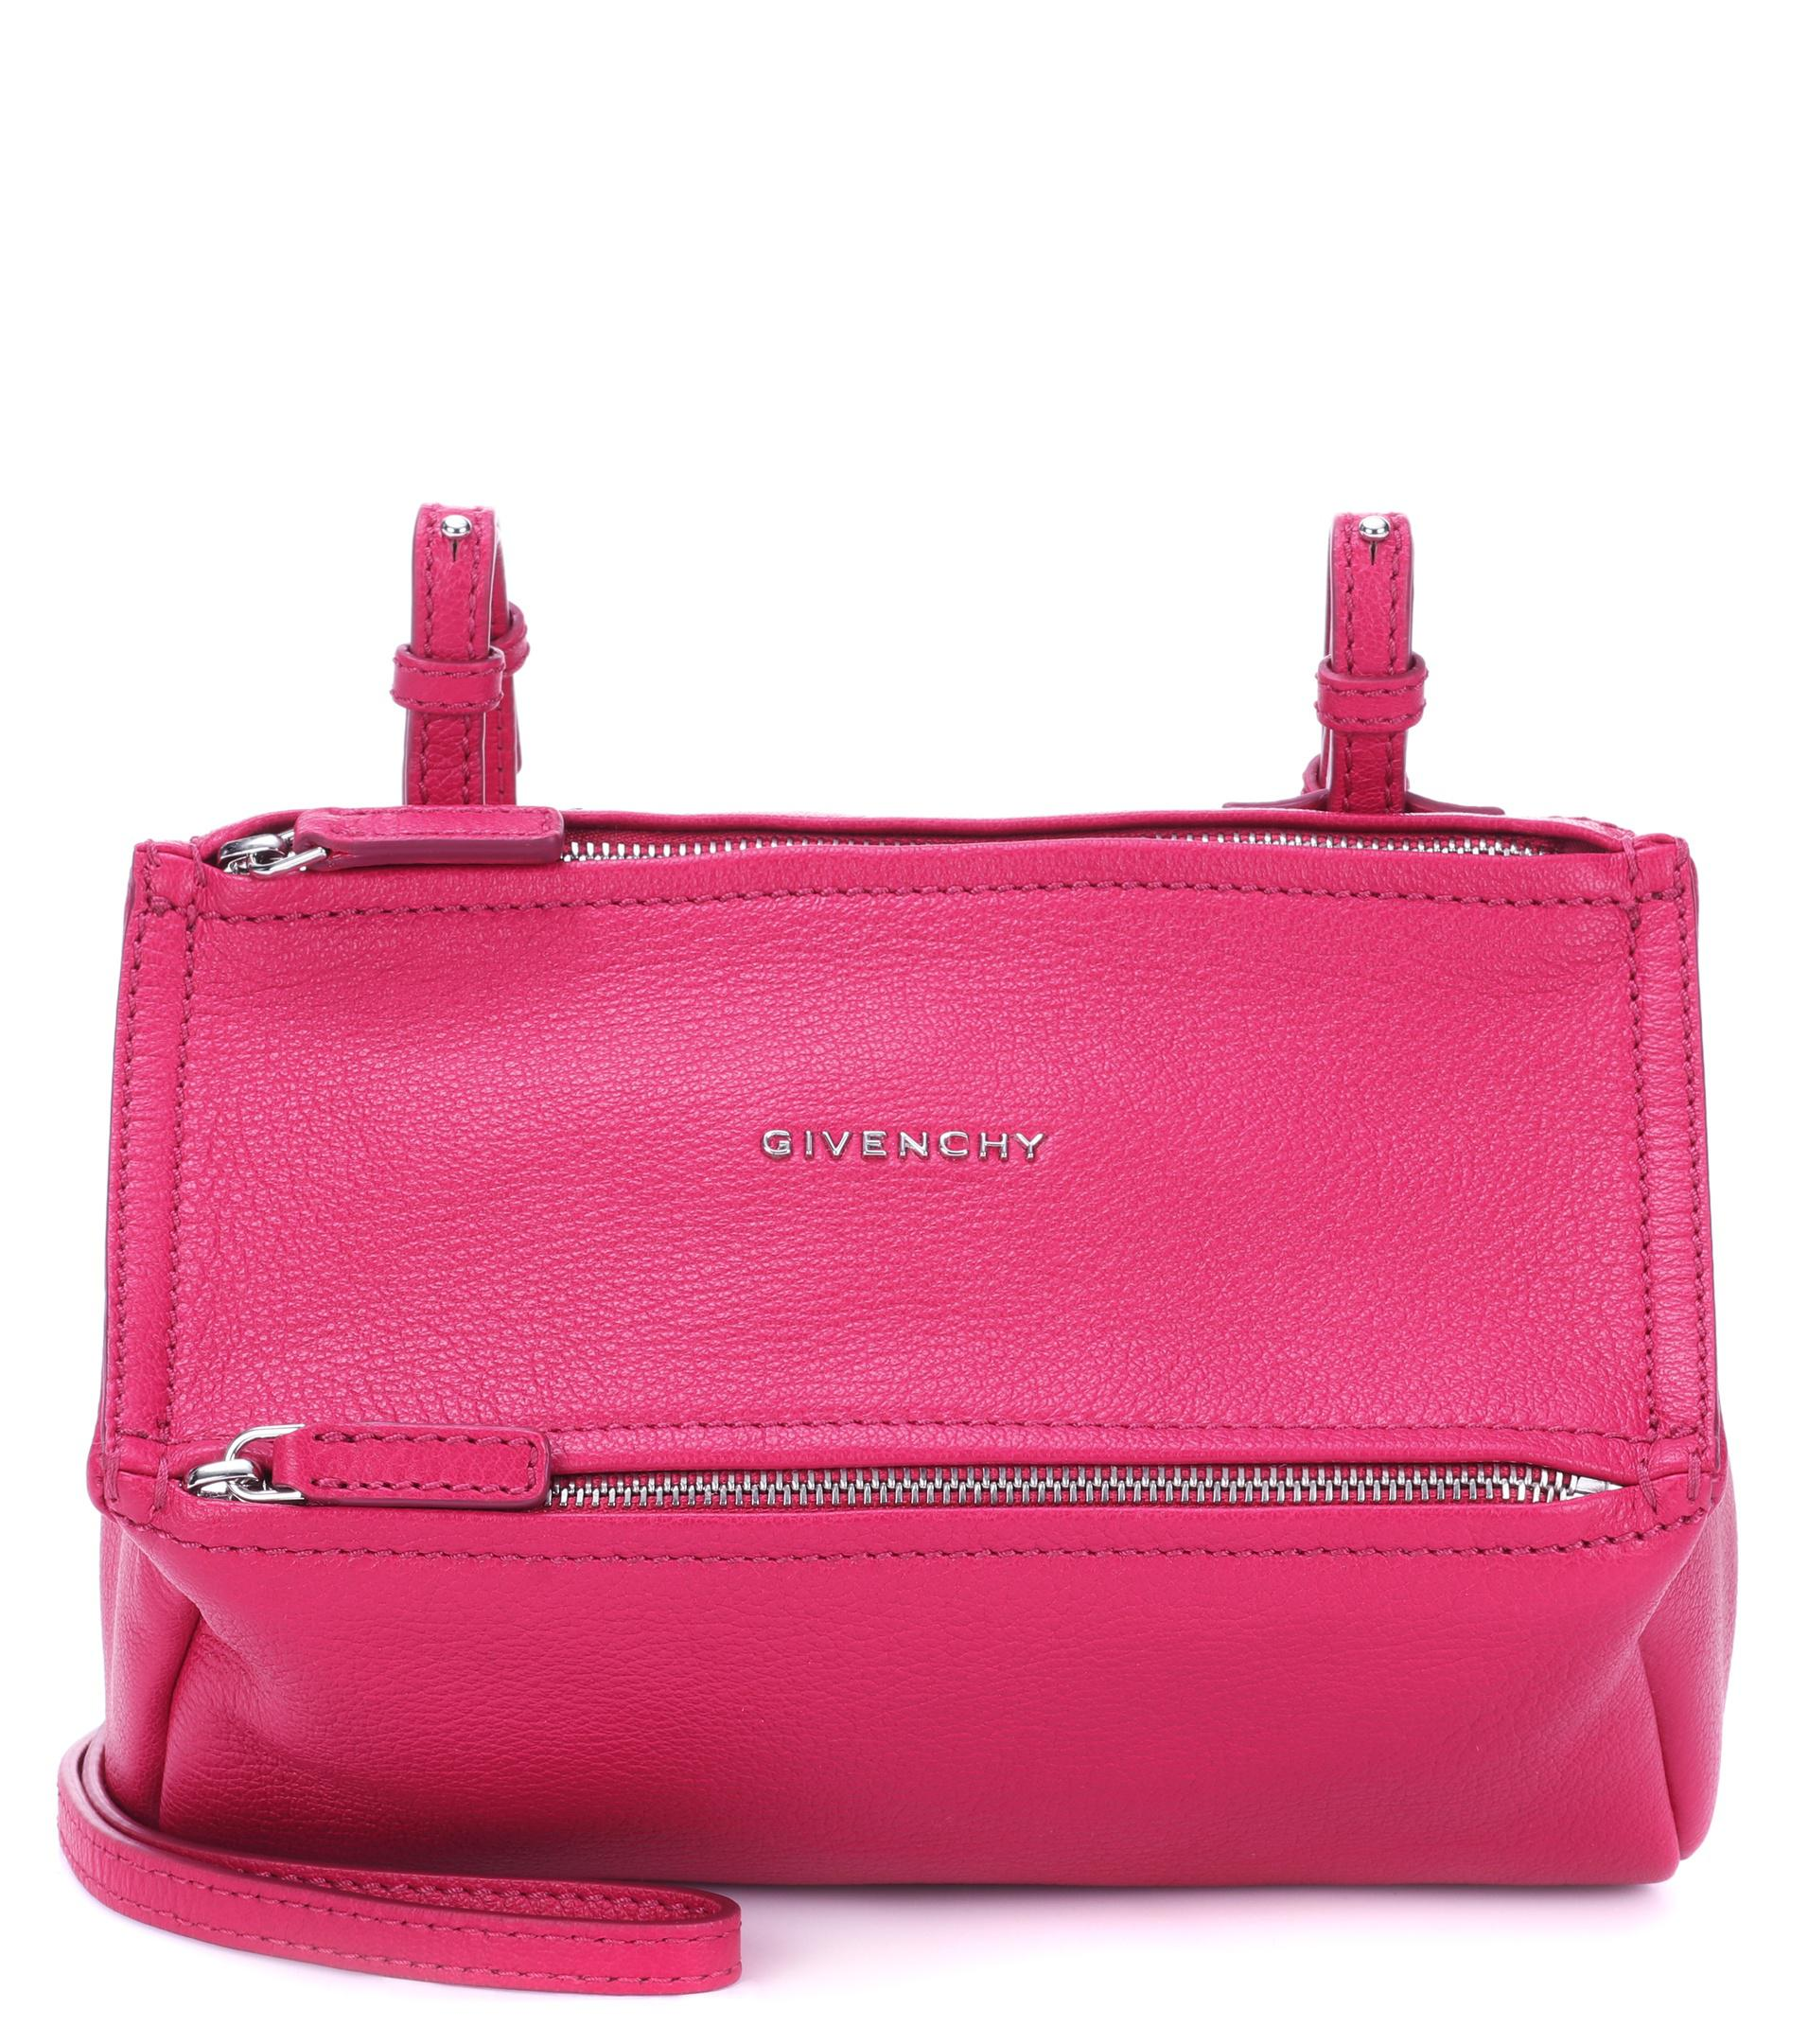 1936ac04afbf Lyst - Sac cross-body en cuir Pandora Mini Givenchy en coloris Rose